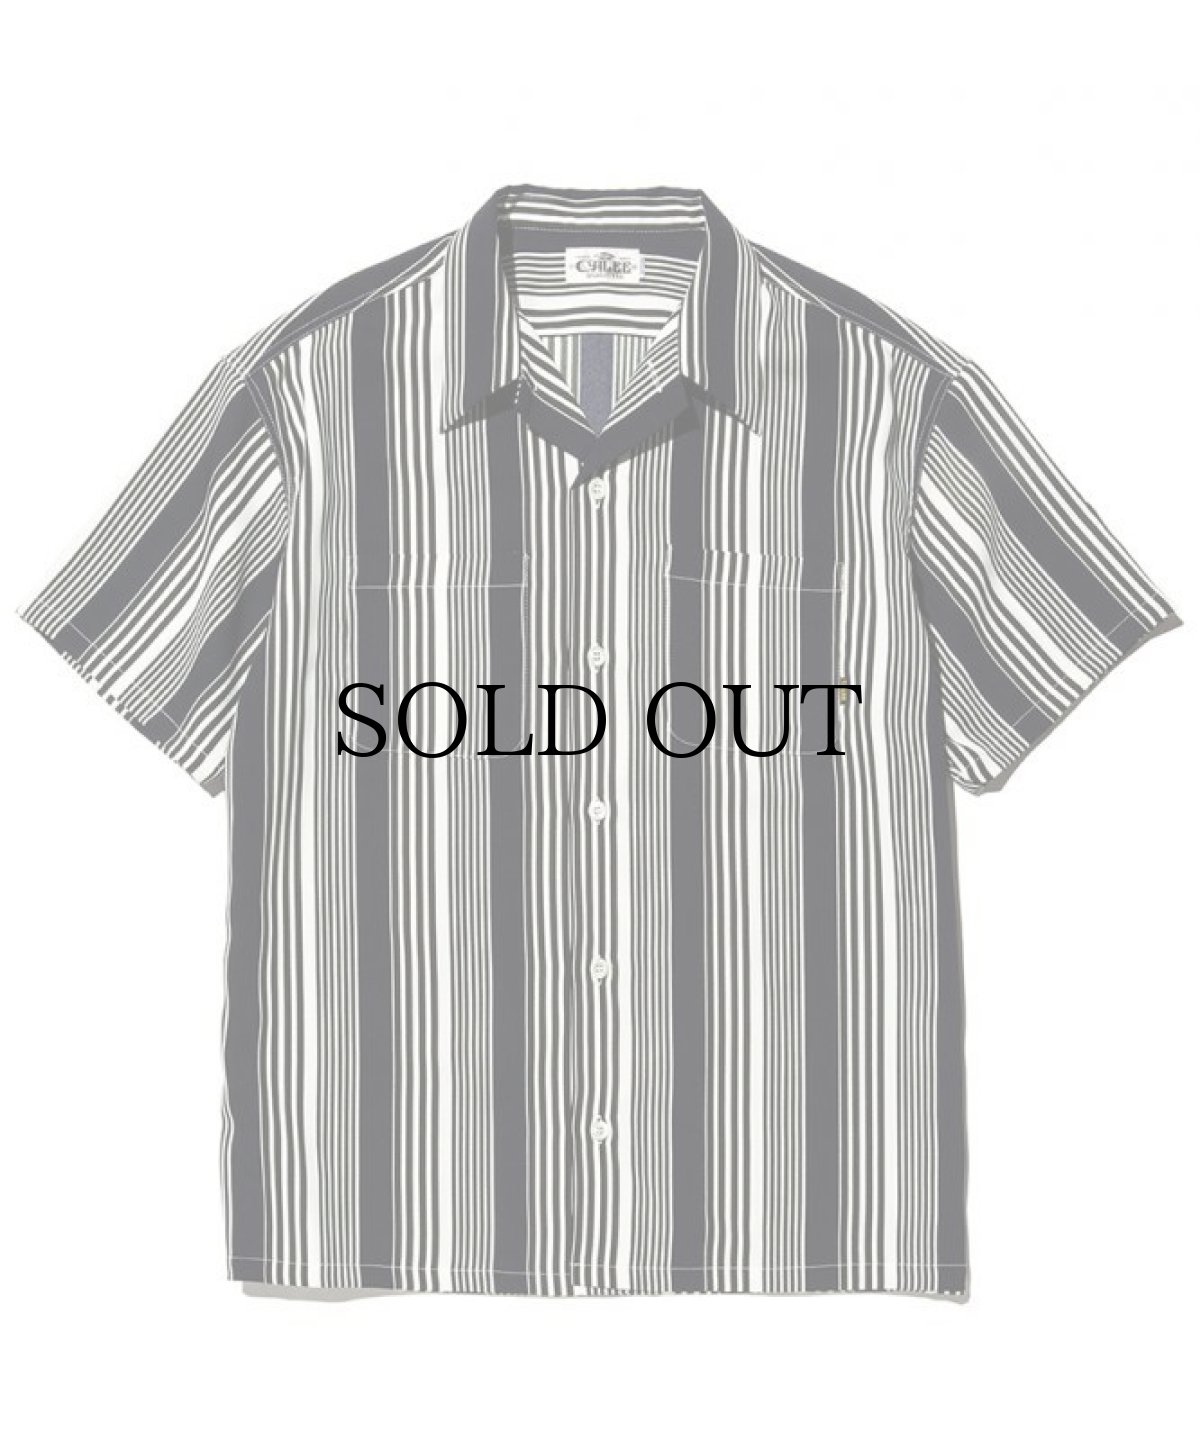 画像1: CALEE / S/S stripe shirt -NAVY- (1)